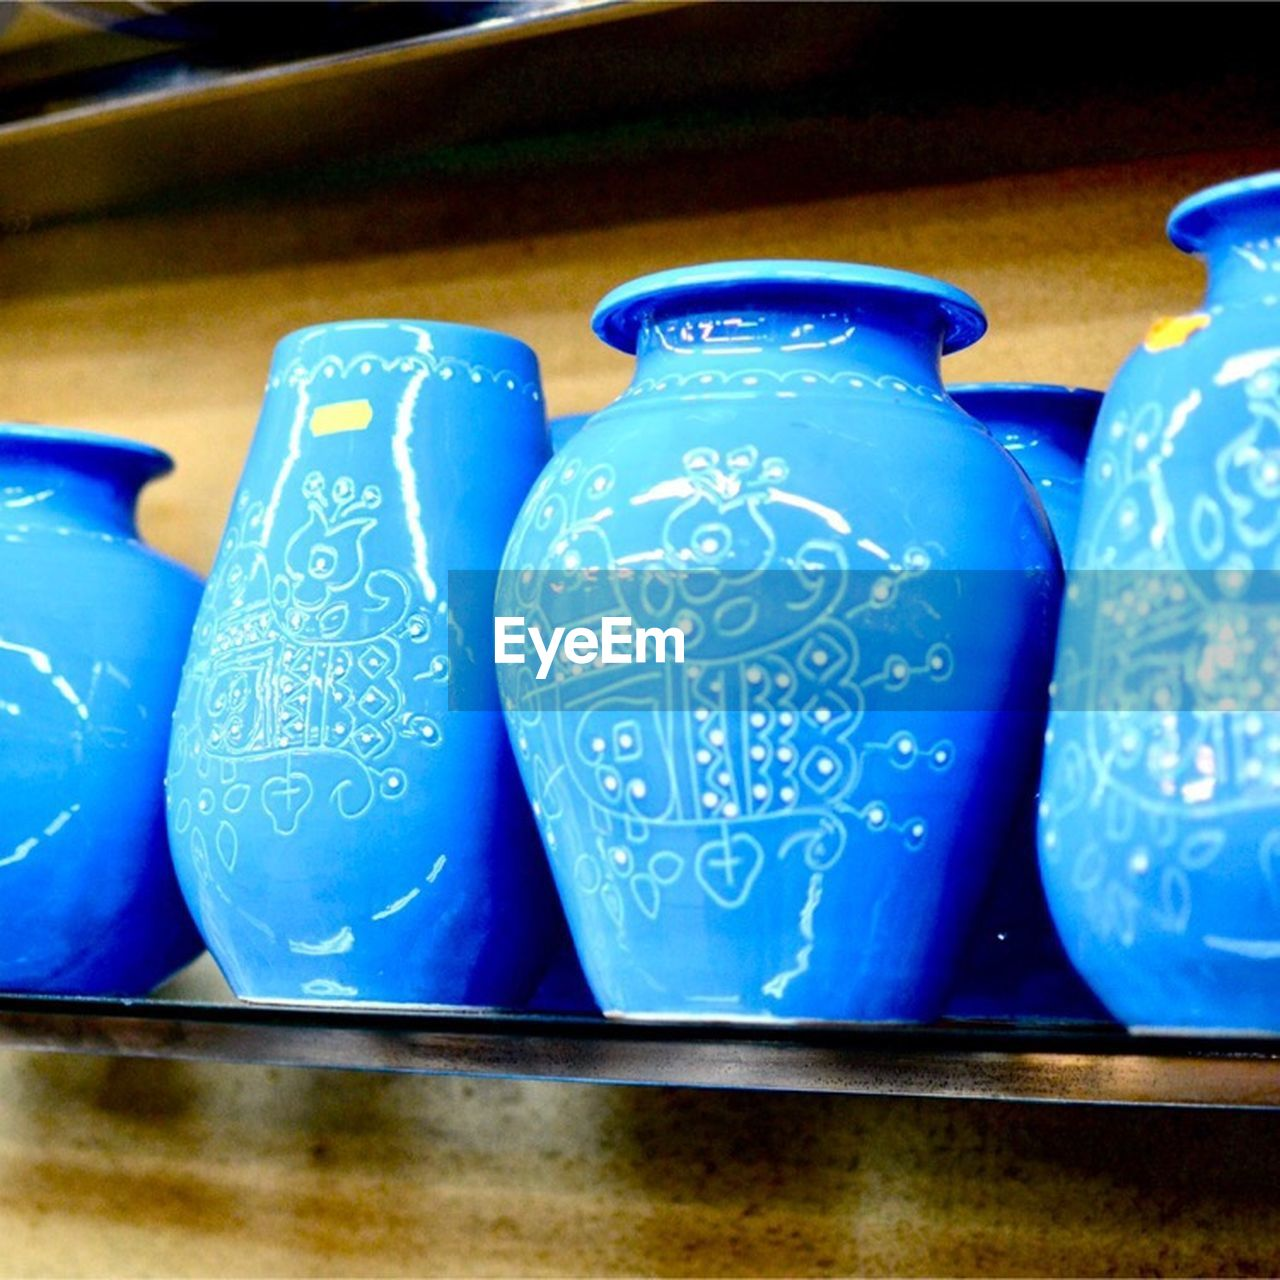 blue, indoors, no people, still life, close-up, table, container, ceramics, art and craft, side by side, arrangement, pattern, pottery, group of objects, focus on foreground, design, business, creativity, in a row, vase, pitcher - jug